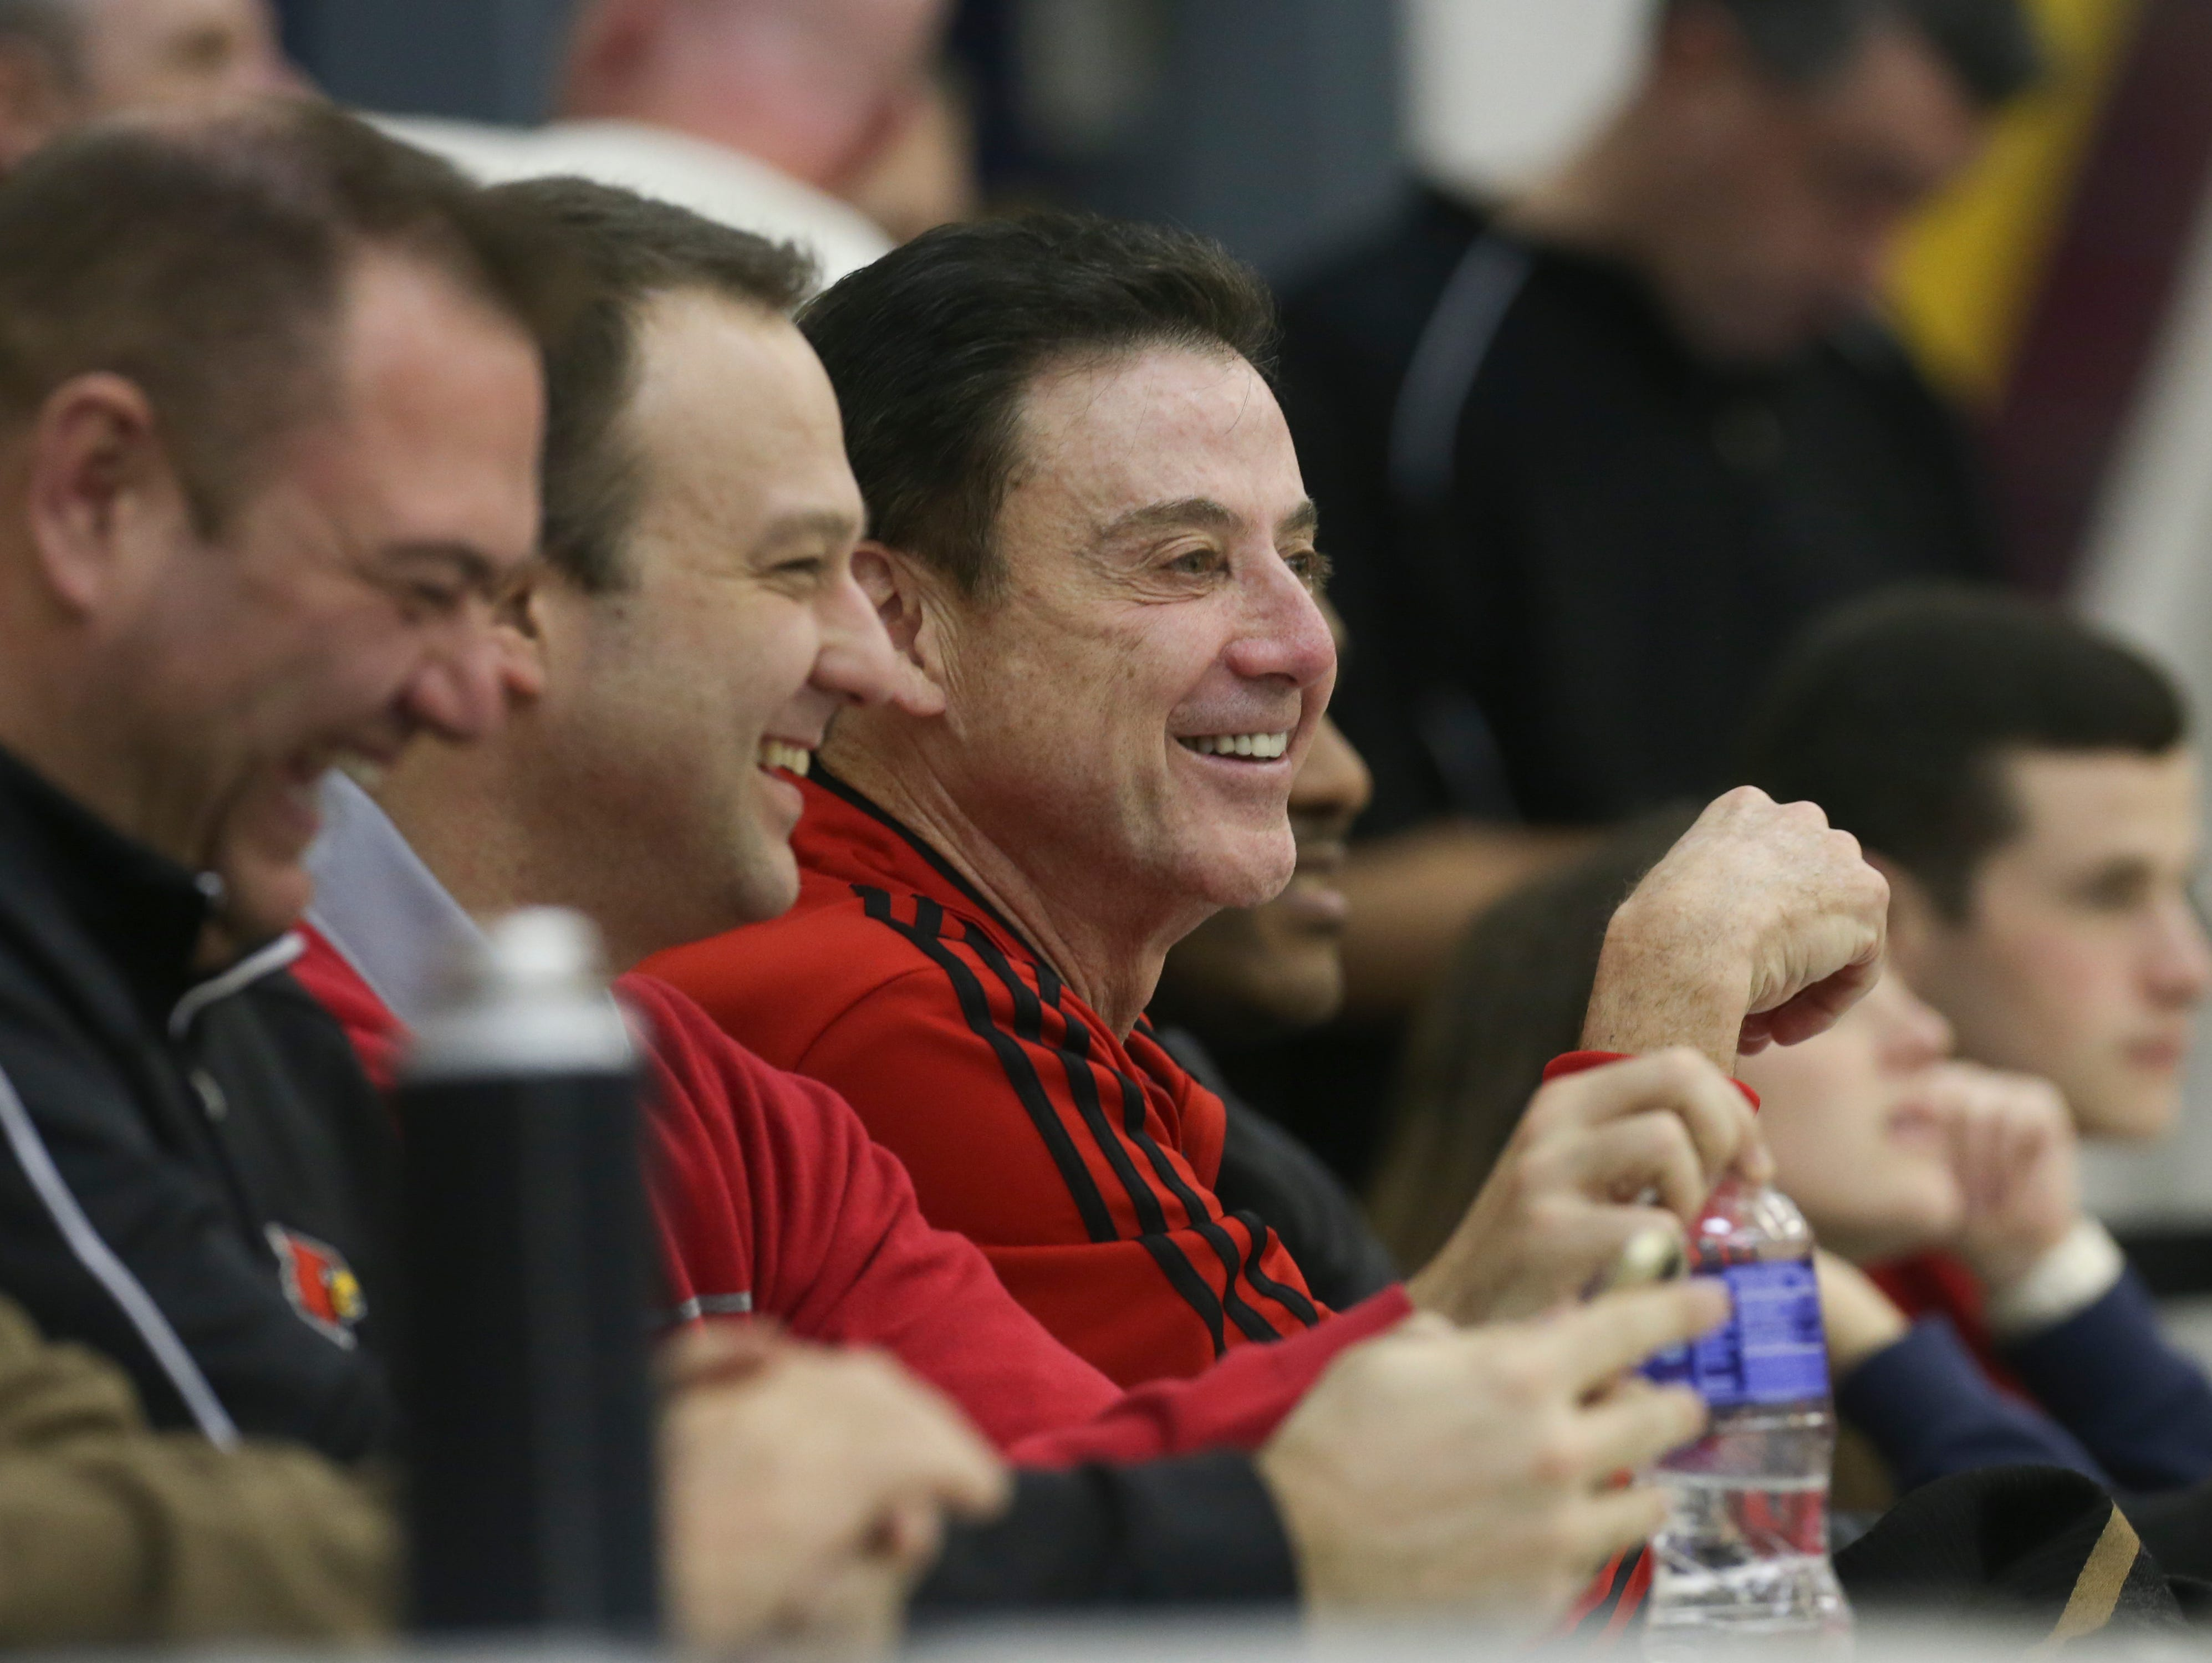 U of L head coach Rick Pitino, center, seemed pleased as he watched signee V.J. King's Paul VI Catholic High School squad defeat the North Bullitt High School in the King of the Bluegrass Tournament at Fairdale High School. King scored 35 points in the victory. Dec. 20, 2015